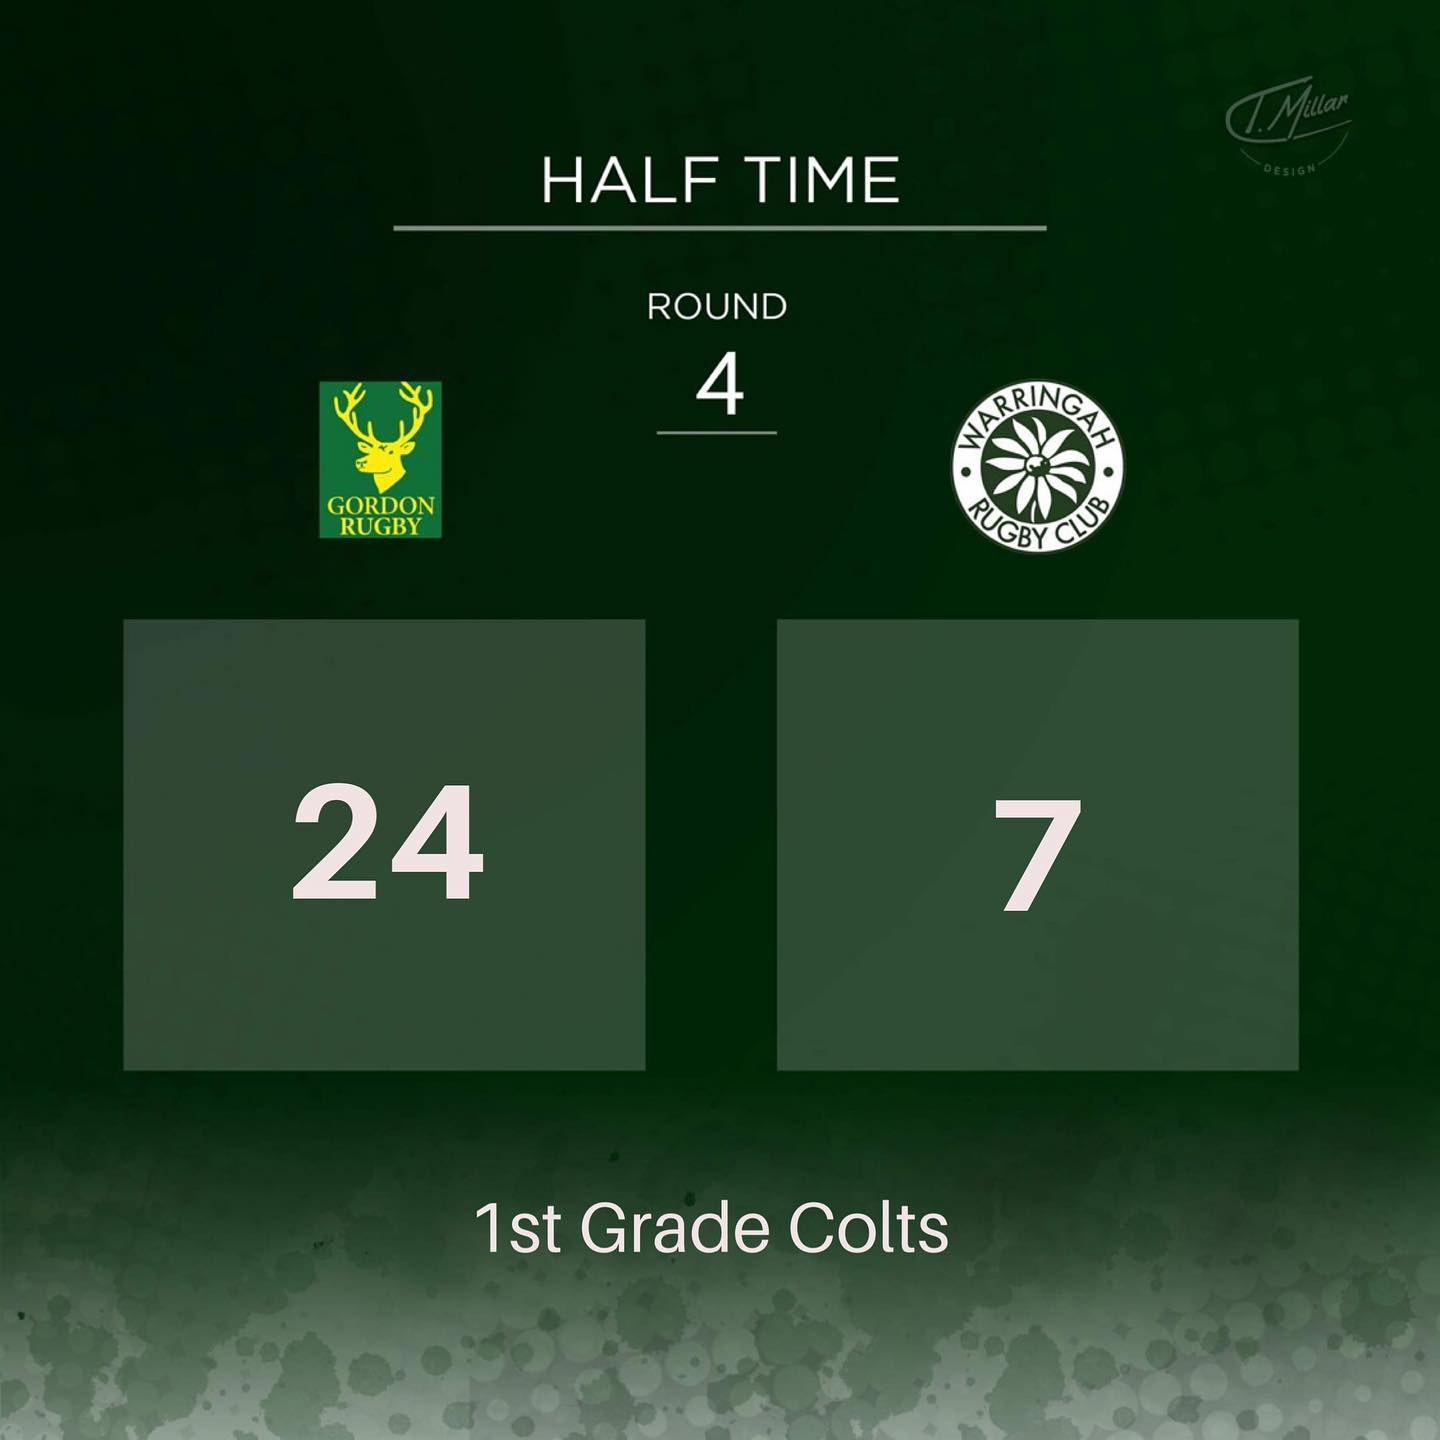 Half time in 1st Grade Colts Rats 7 Gordon 24. #warringahrats #warringahrugby #o...